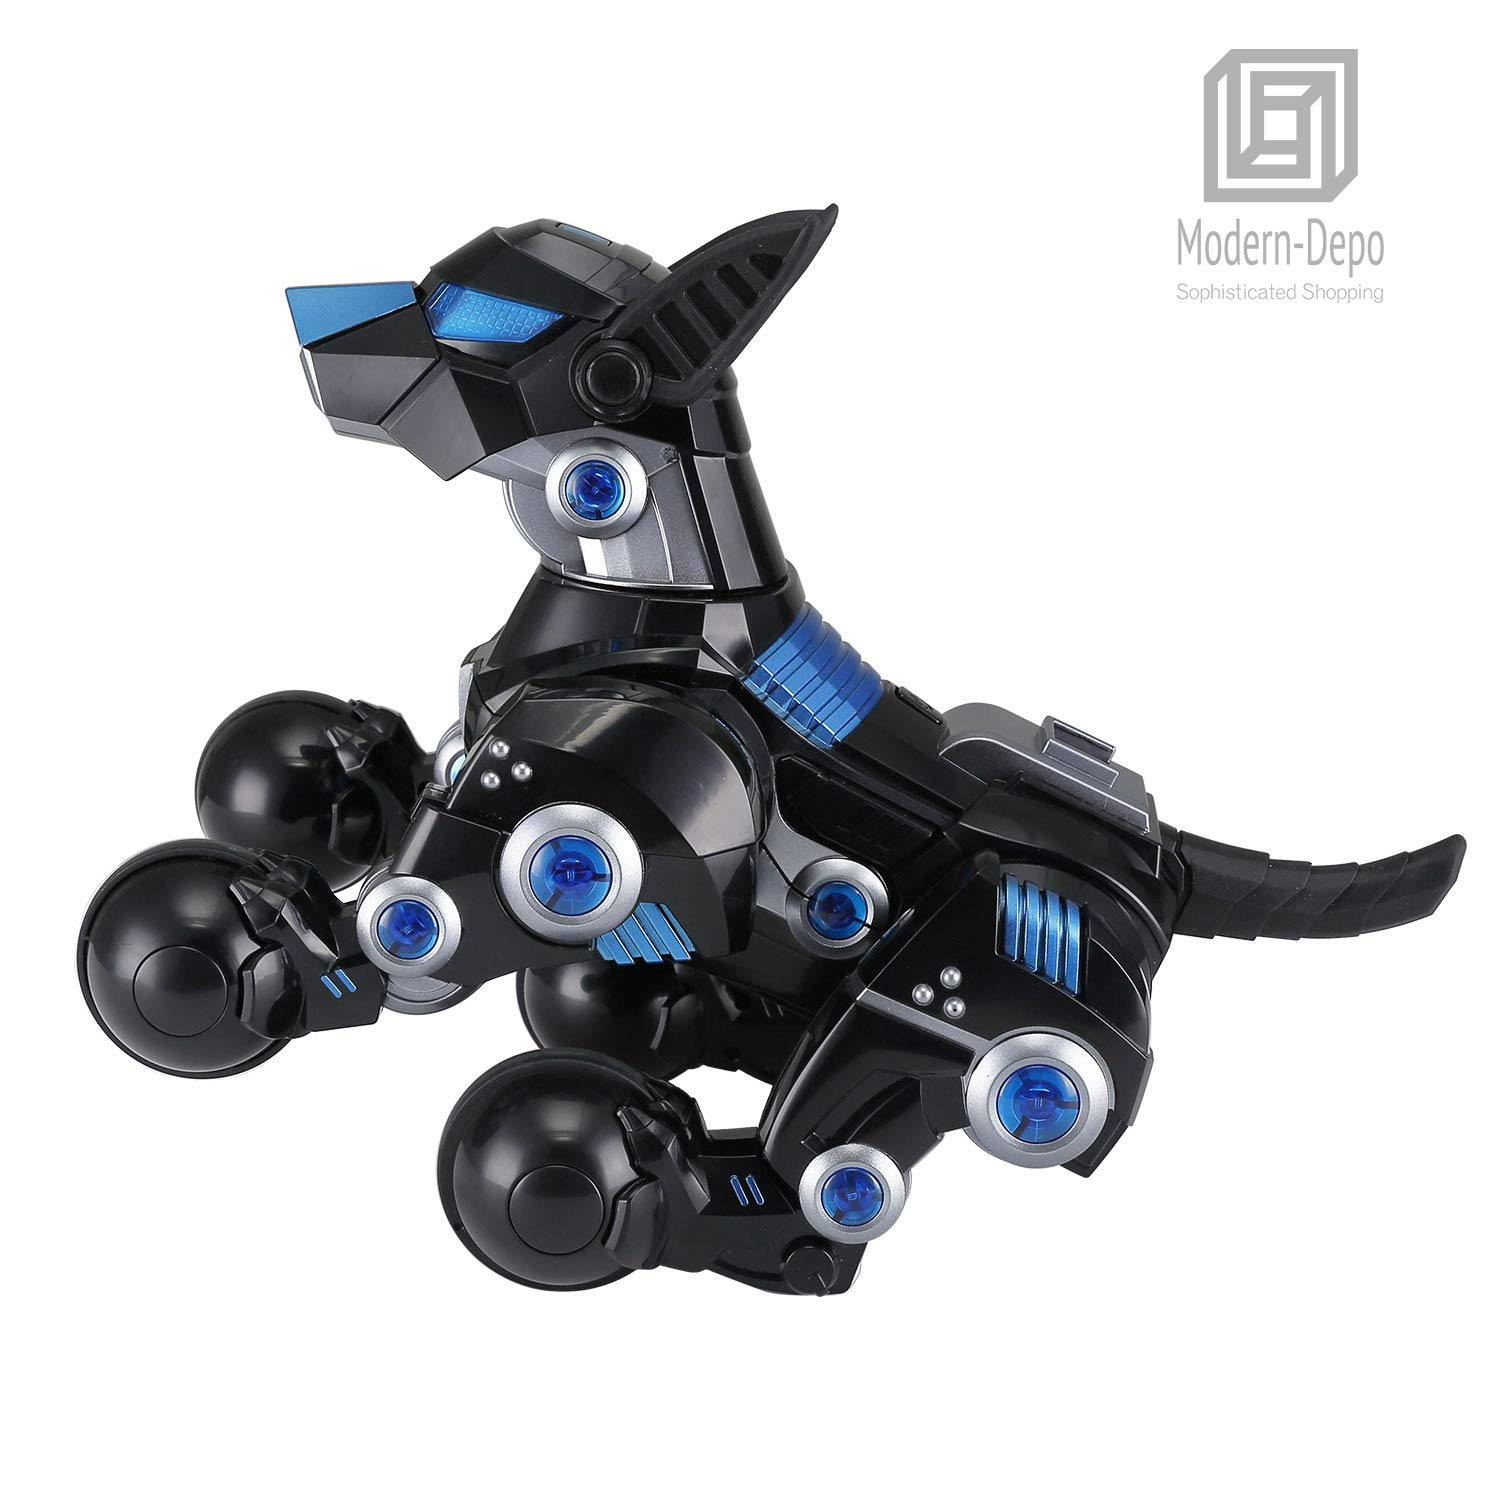 Modern-Depo Rastar Intelligent Robot Dog with Remote Control for Kids, USB Charging, Dancing Demo - Black by Modern-Depo (Image #5)